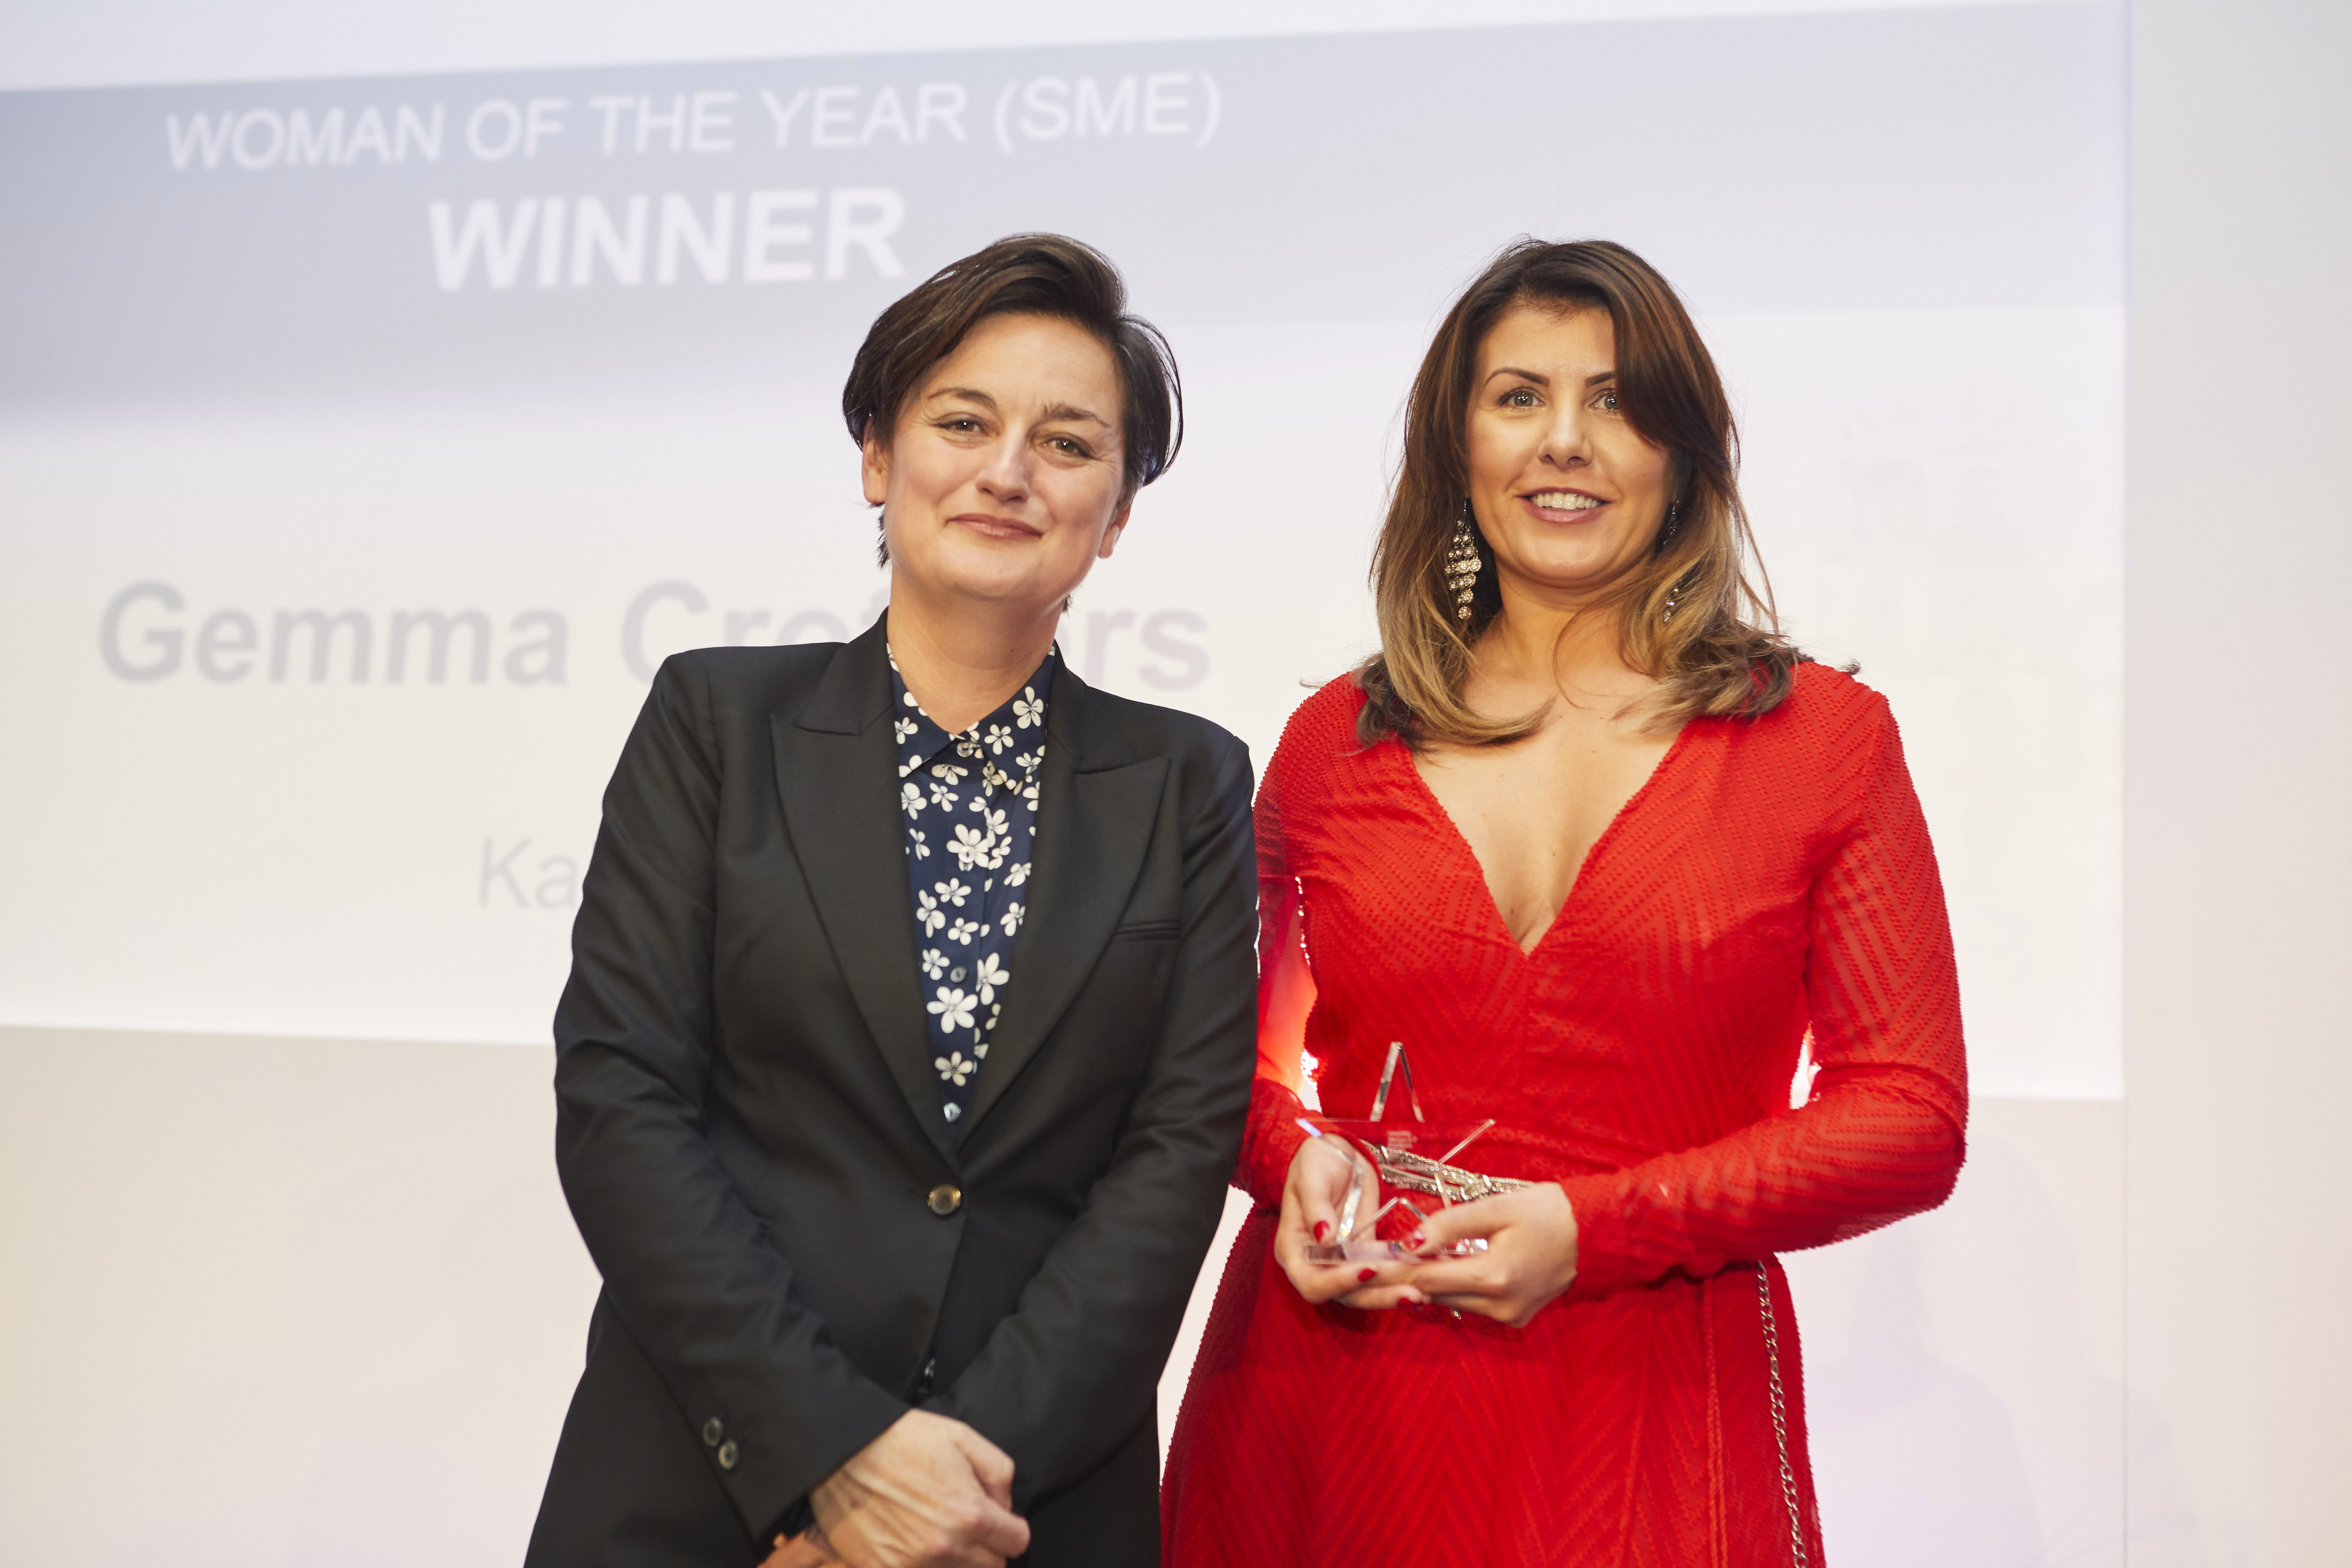 Kainos Tech Outreach Manager scoops UK 'Woman of the Year' title at IT Excellence Awards